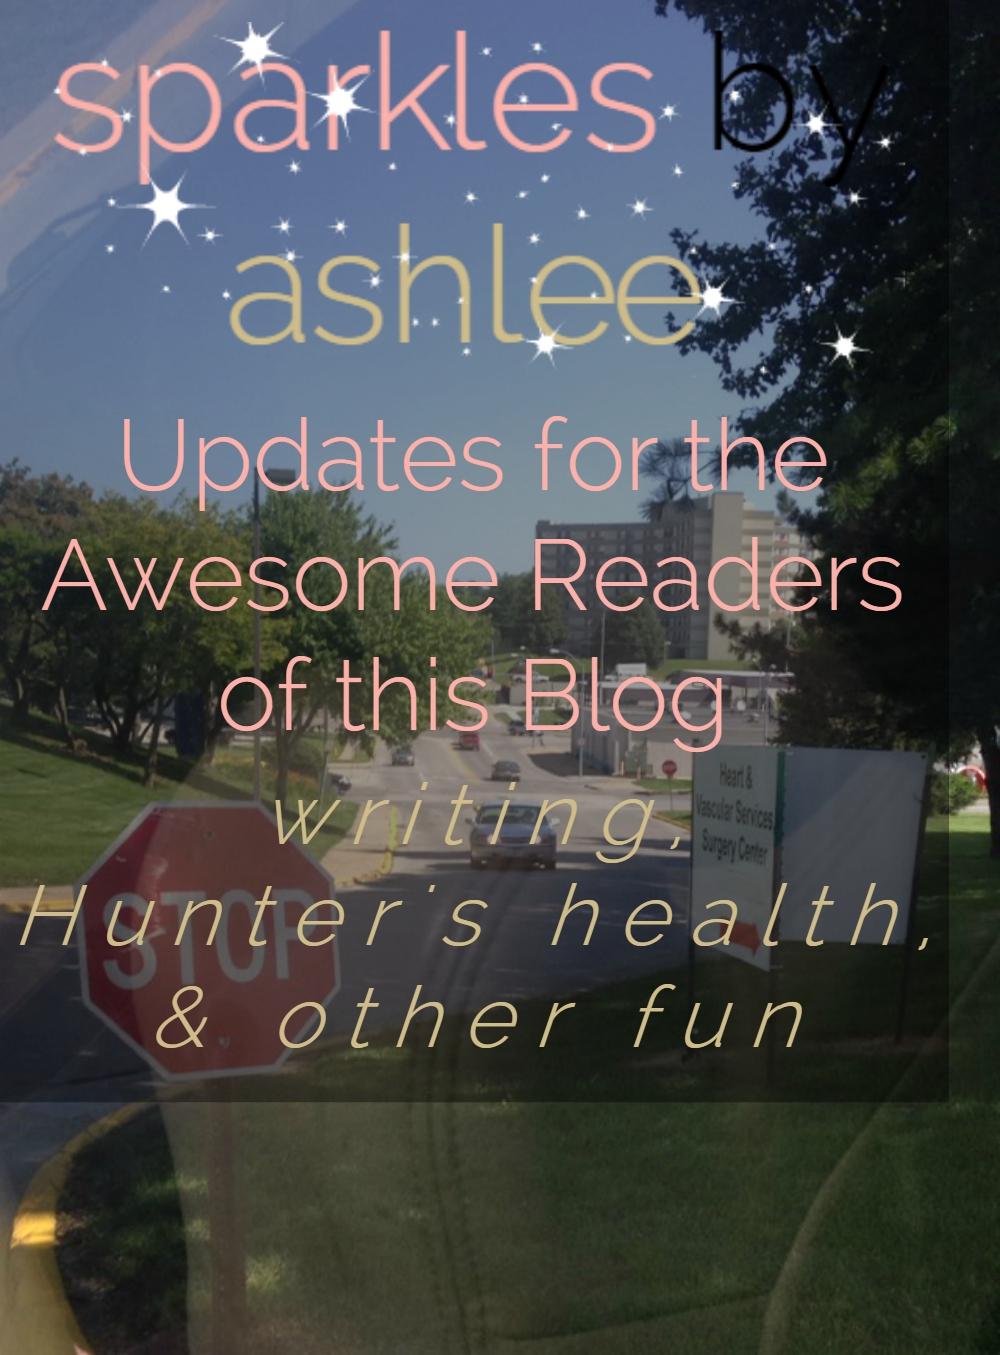 Updates-for-the-Awesome-Readers-of-This-Blog-Sparkles-by-Ashlee.jpg